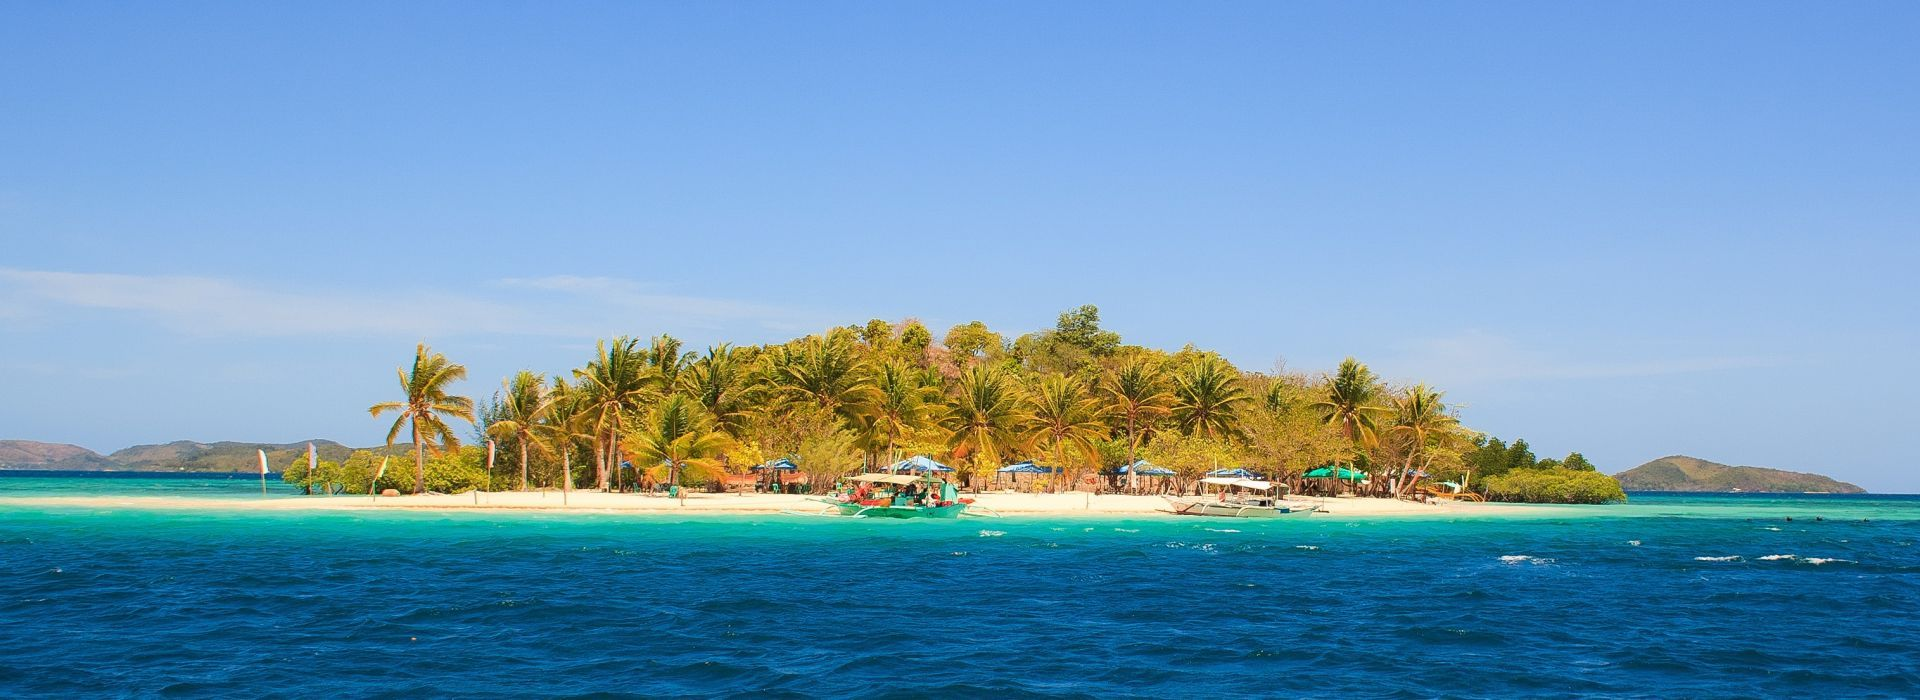 Sightseeing, attractions, culture and history Tours in Philippines